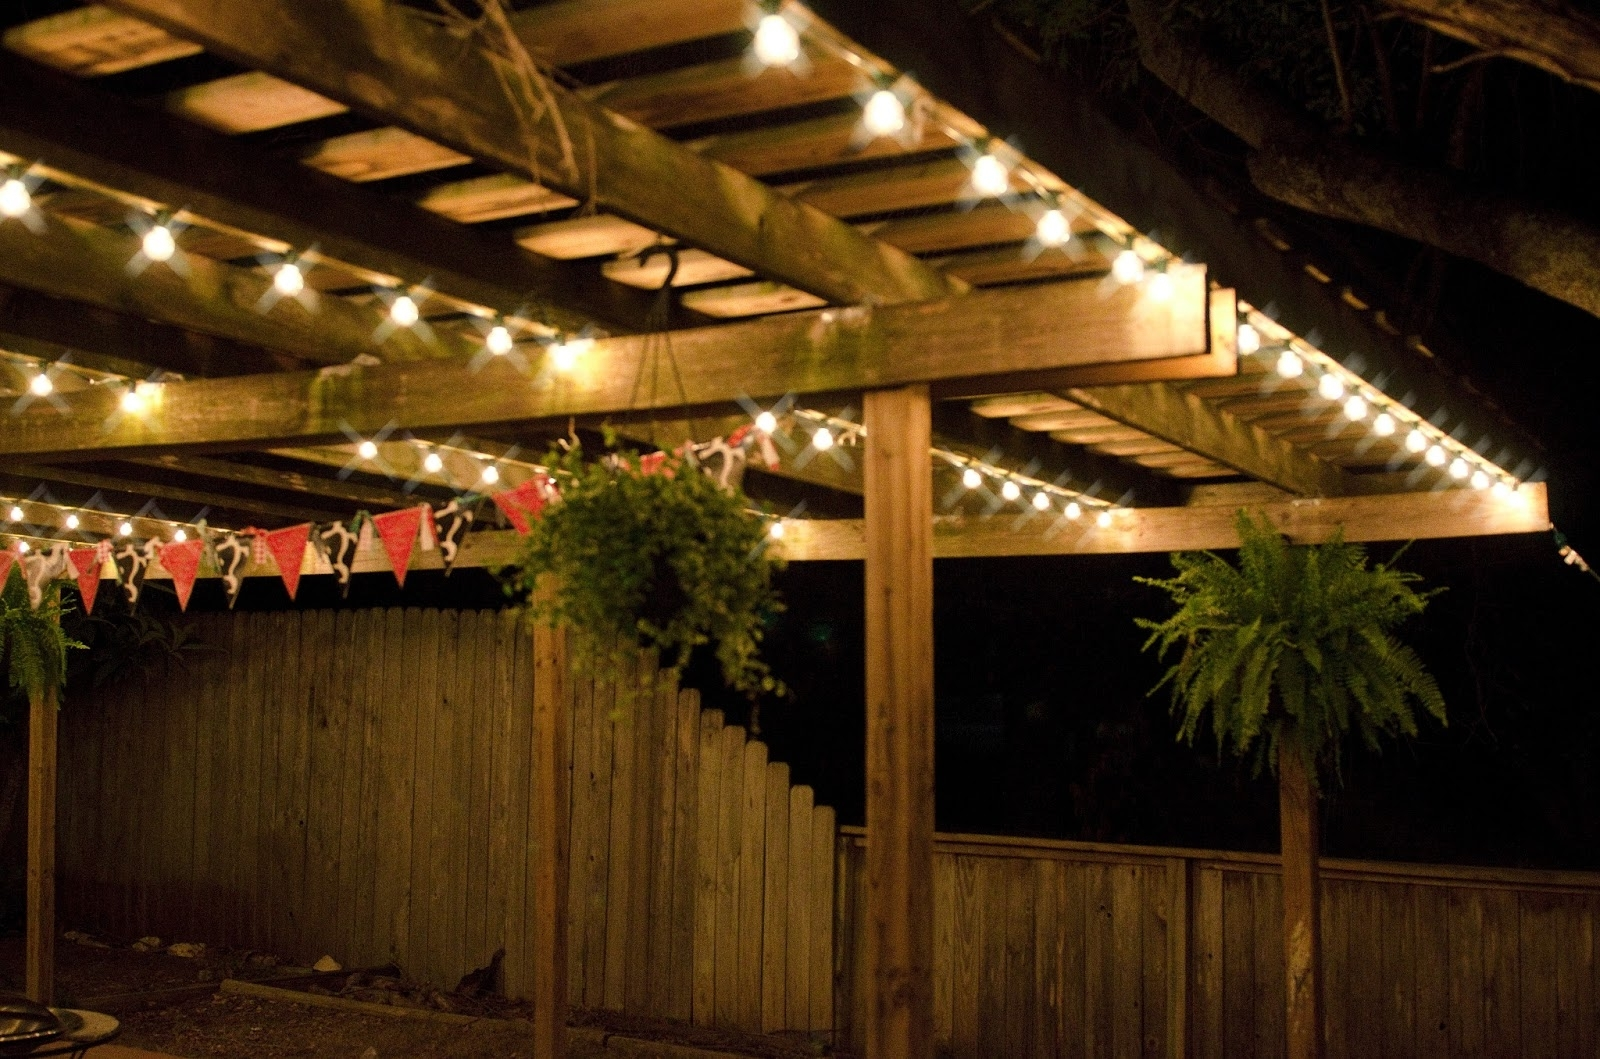 Outdoor Deck String Lighting Also How To Hang Lights On Ideas Images For Latest Outdoor Hanging Lights On String (View 14 of 20)